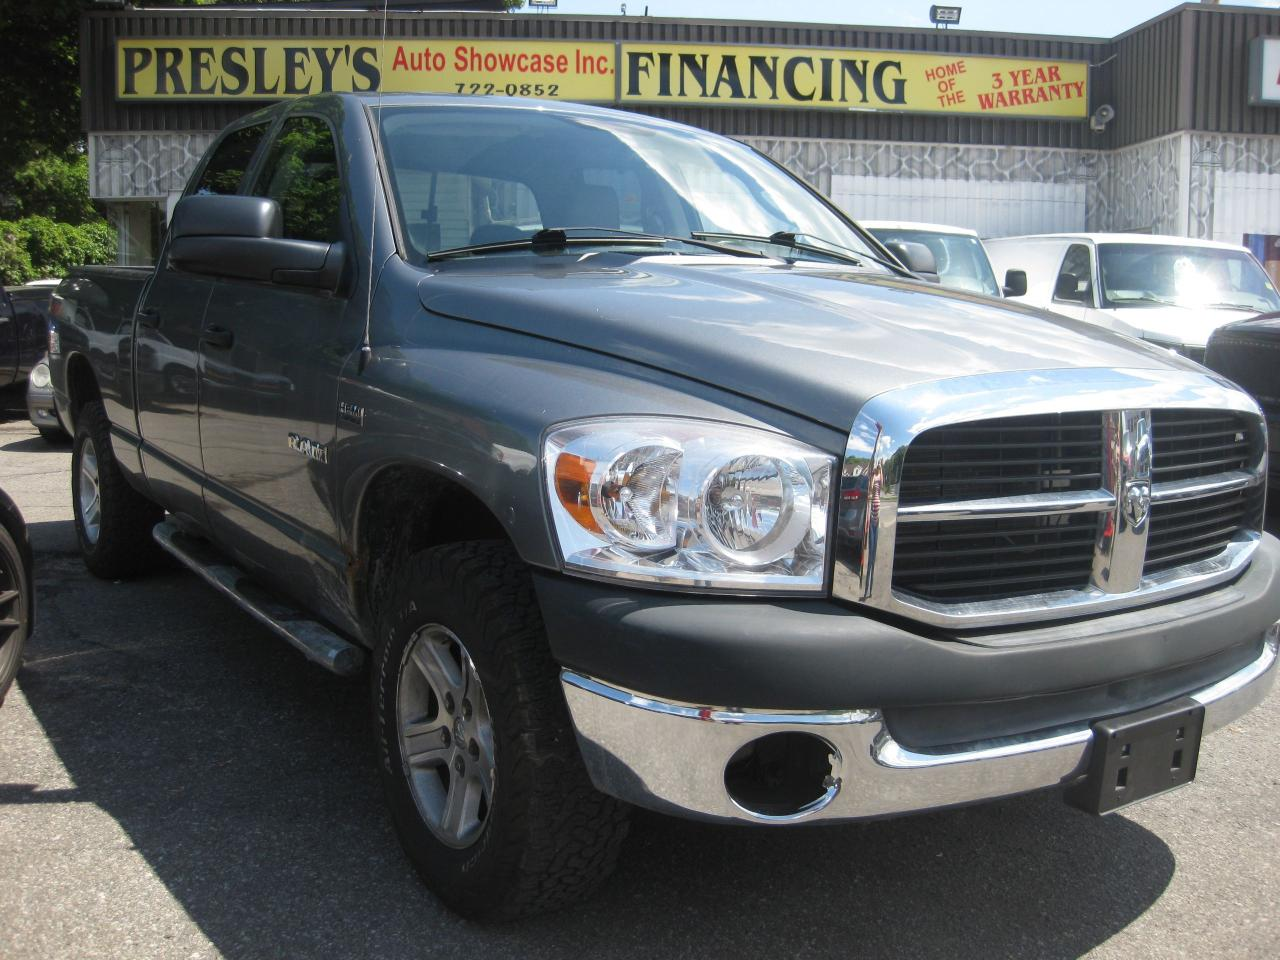 small resolution of used 2008 dodge ram 1500 crew cab 5 7l 8cyl 4x4 ac 6pass cruise pl pw for sale in ottawa ontario carpages ca